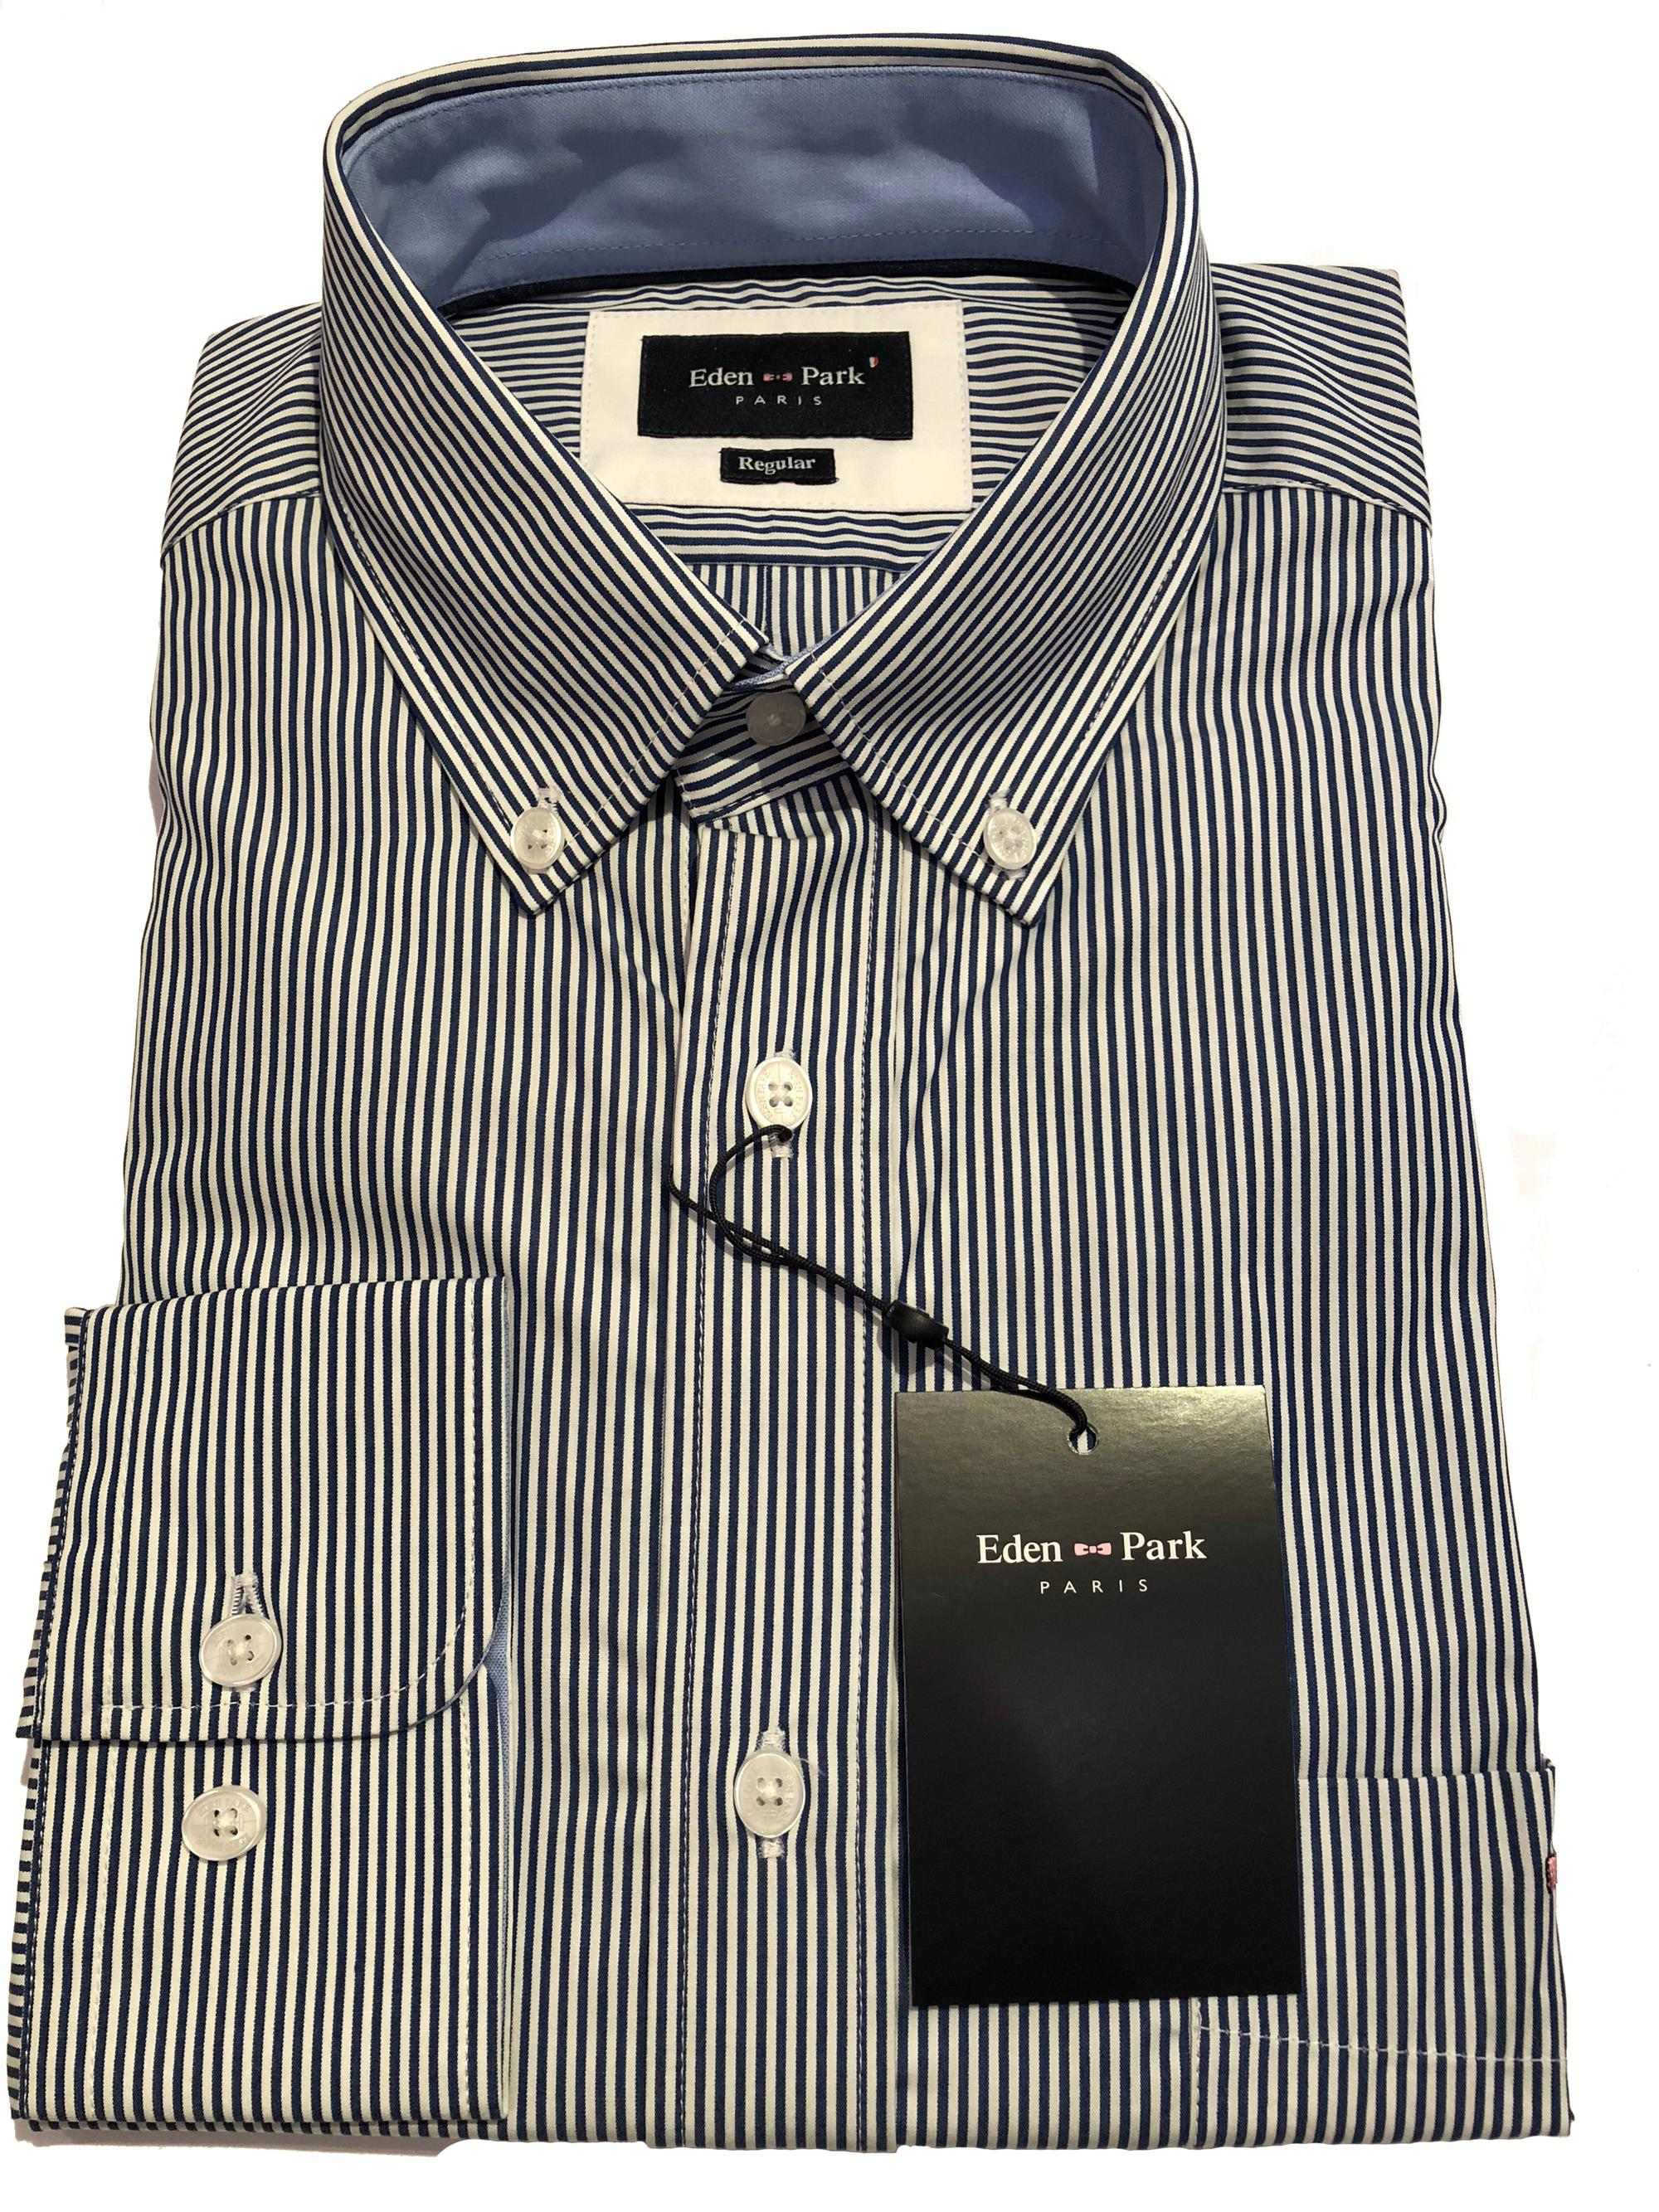 classic long sleeve striped shirt (navy/white)